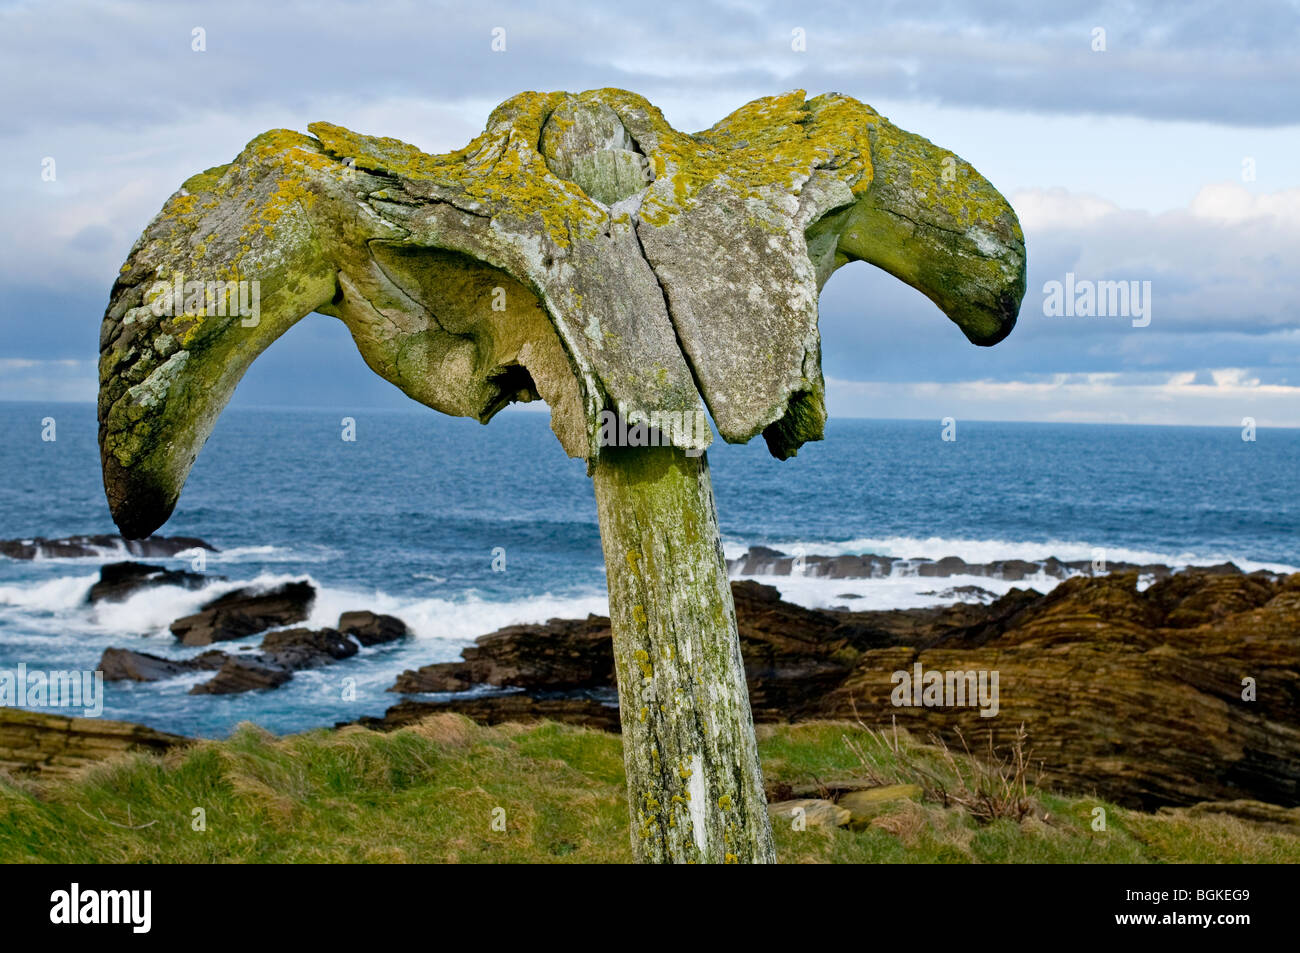 The Birsay whalebone erected on the coastal path from the remains of a beached whale c. 1876. - Stock Image